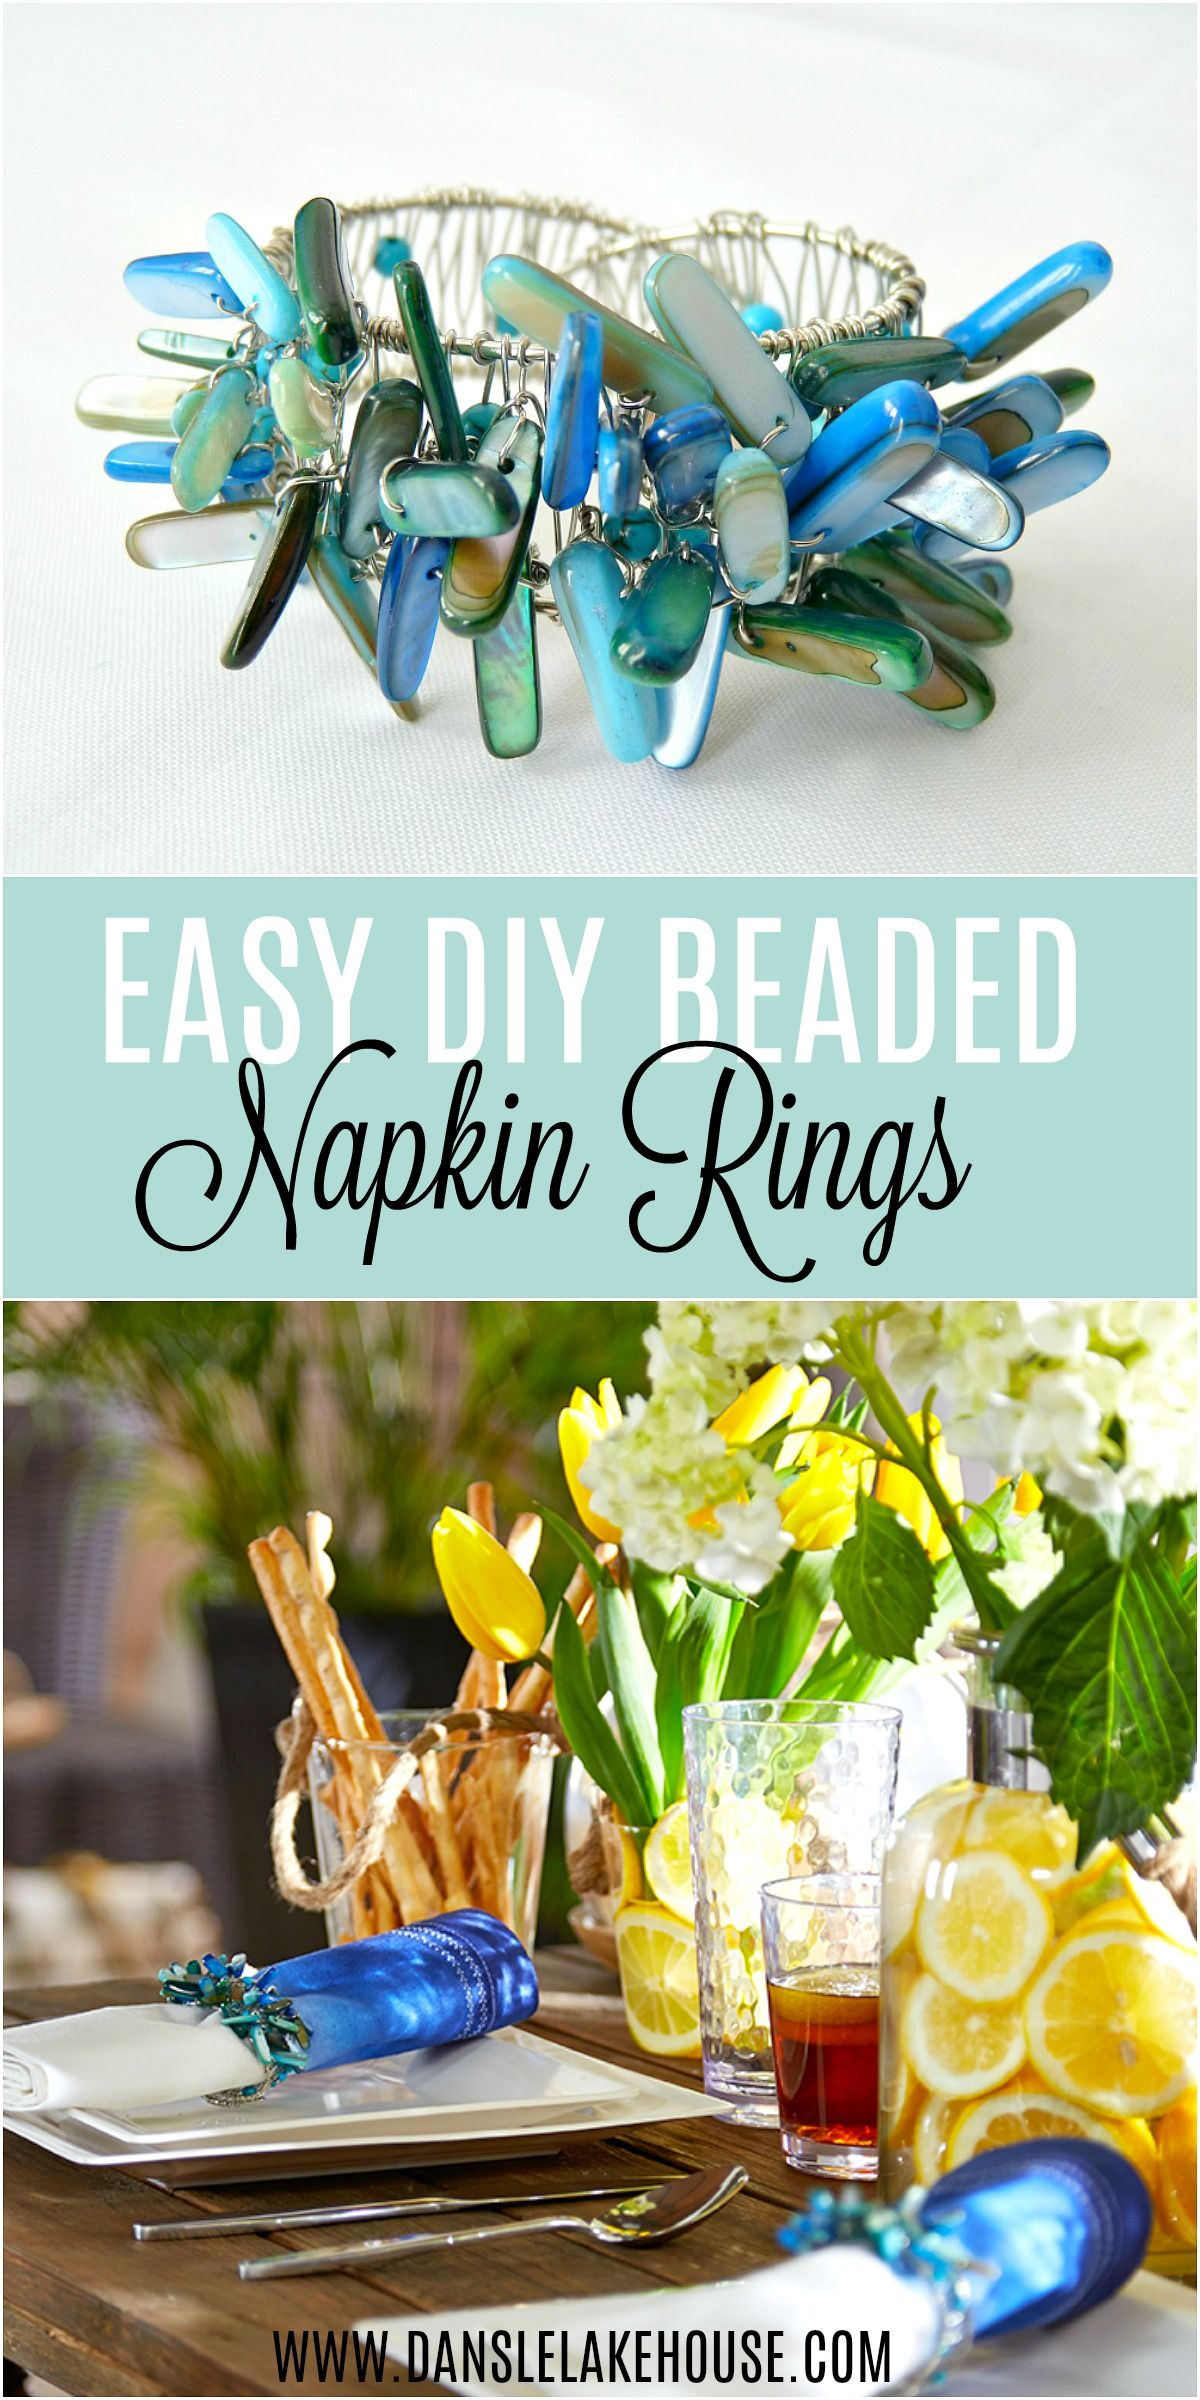 DIY Beaded Napkin Ring - Easy Tutorial + Video #napkinrings